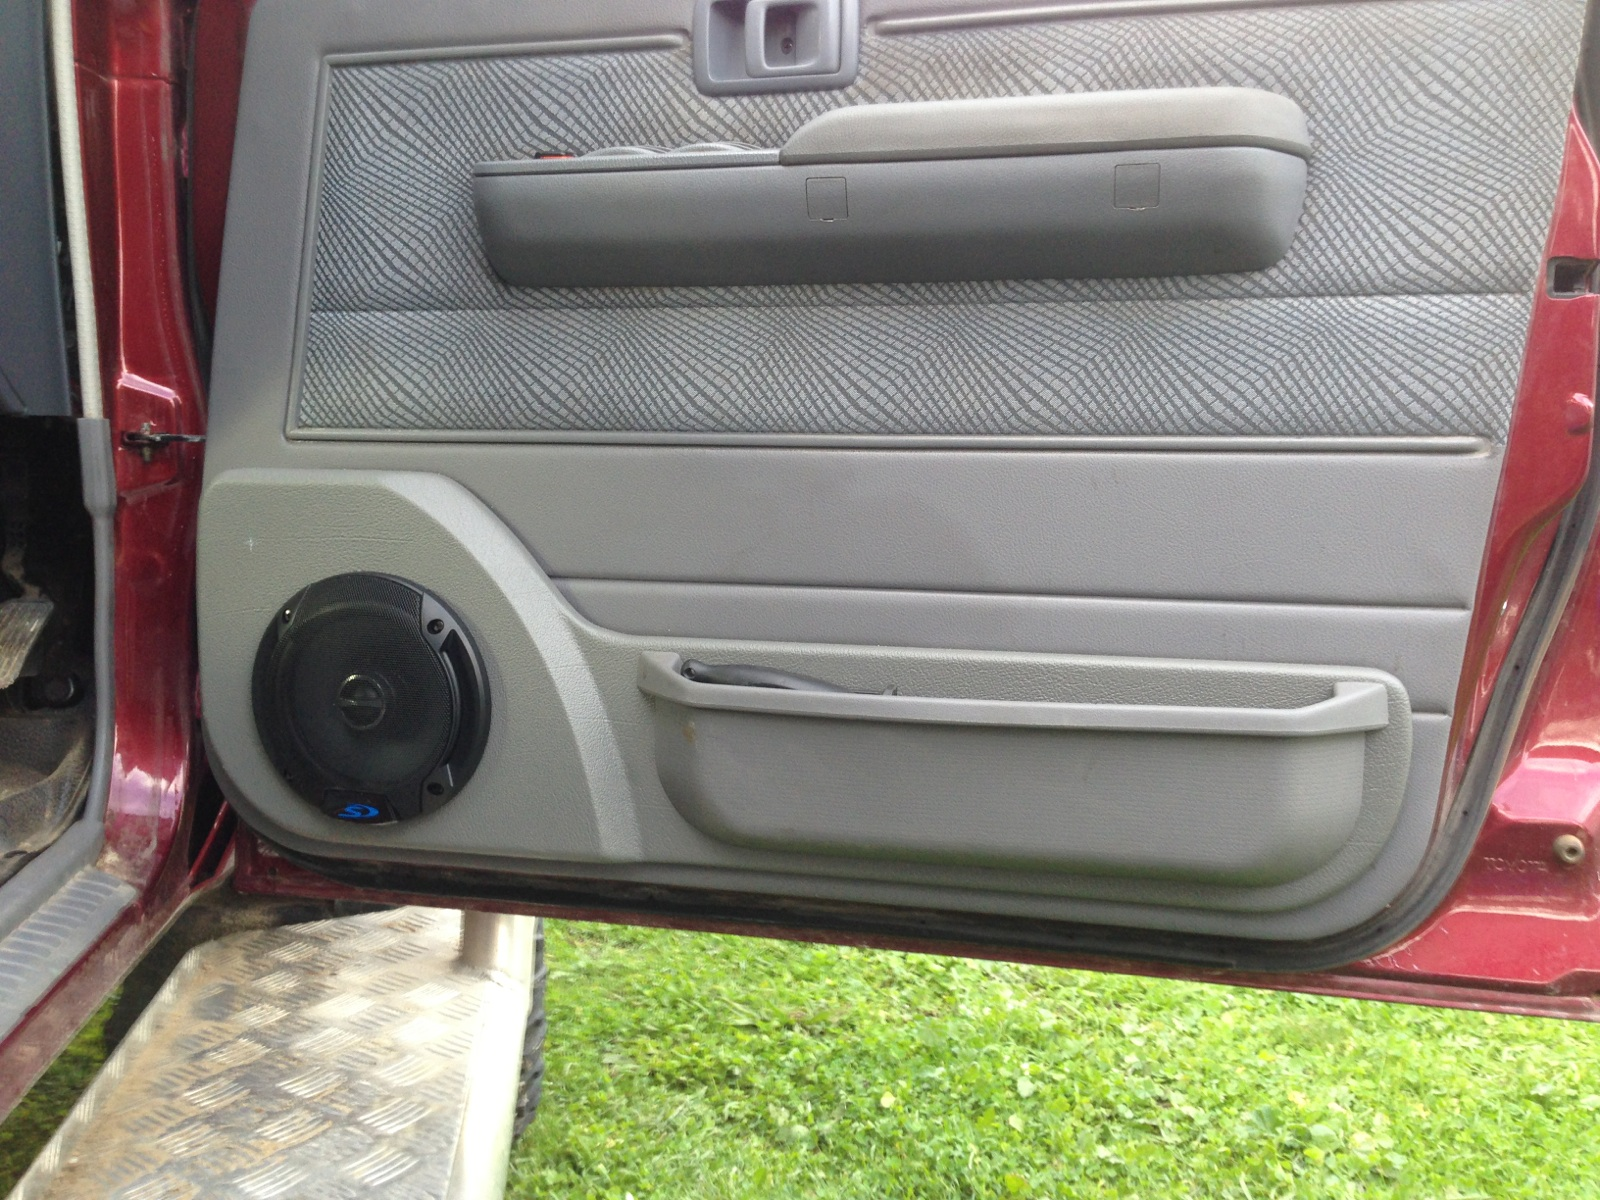 #809B30   Cairns Customs   Car Sound Highly Rated 9379 Air Conditioning Units Cairns wallpapers with 1600x1200 px on helpvideos.info - Air Conditioners, Air Coolers and more